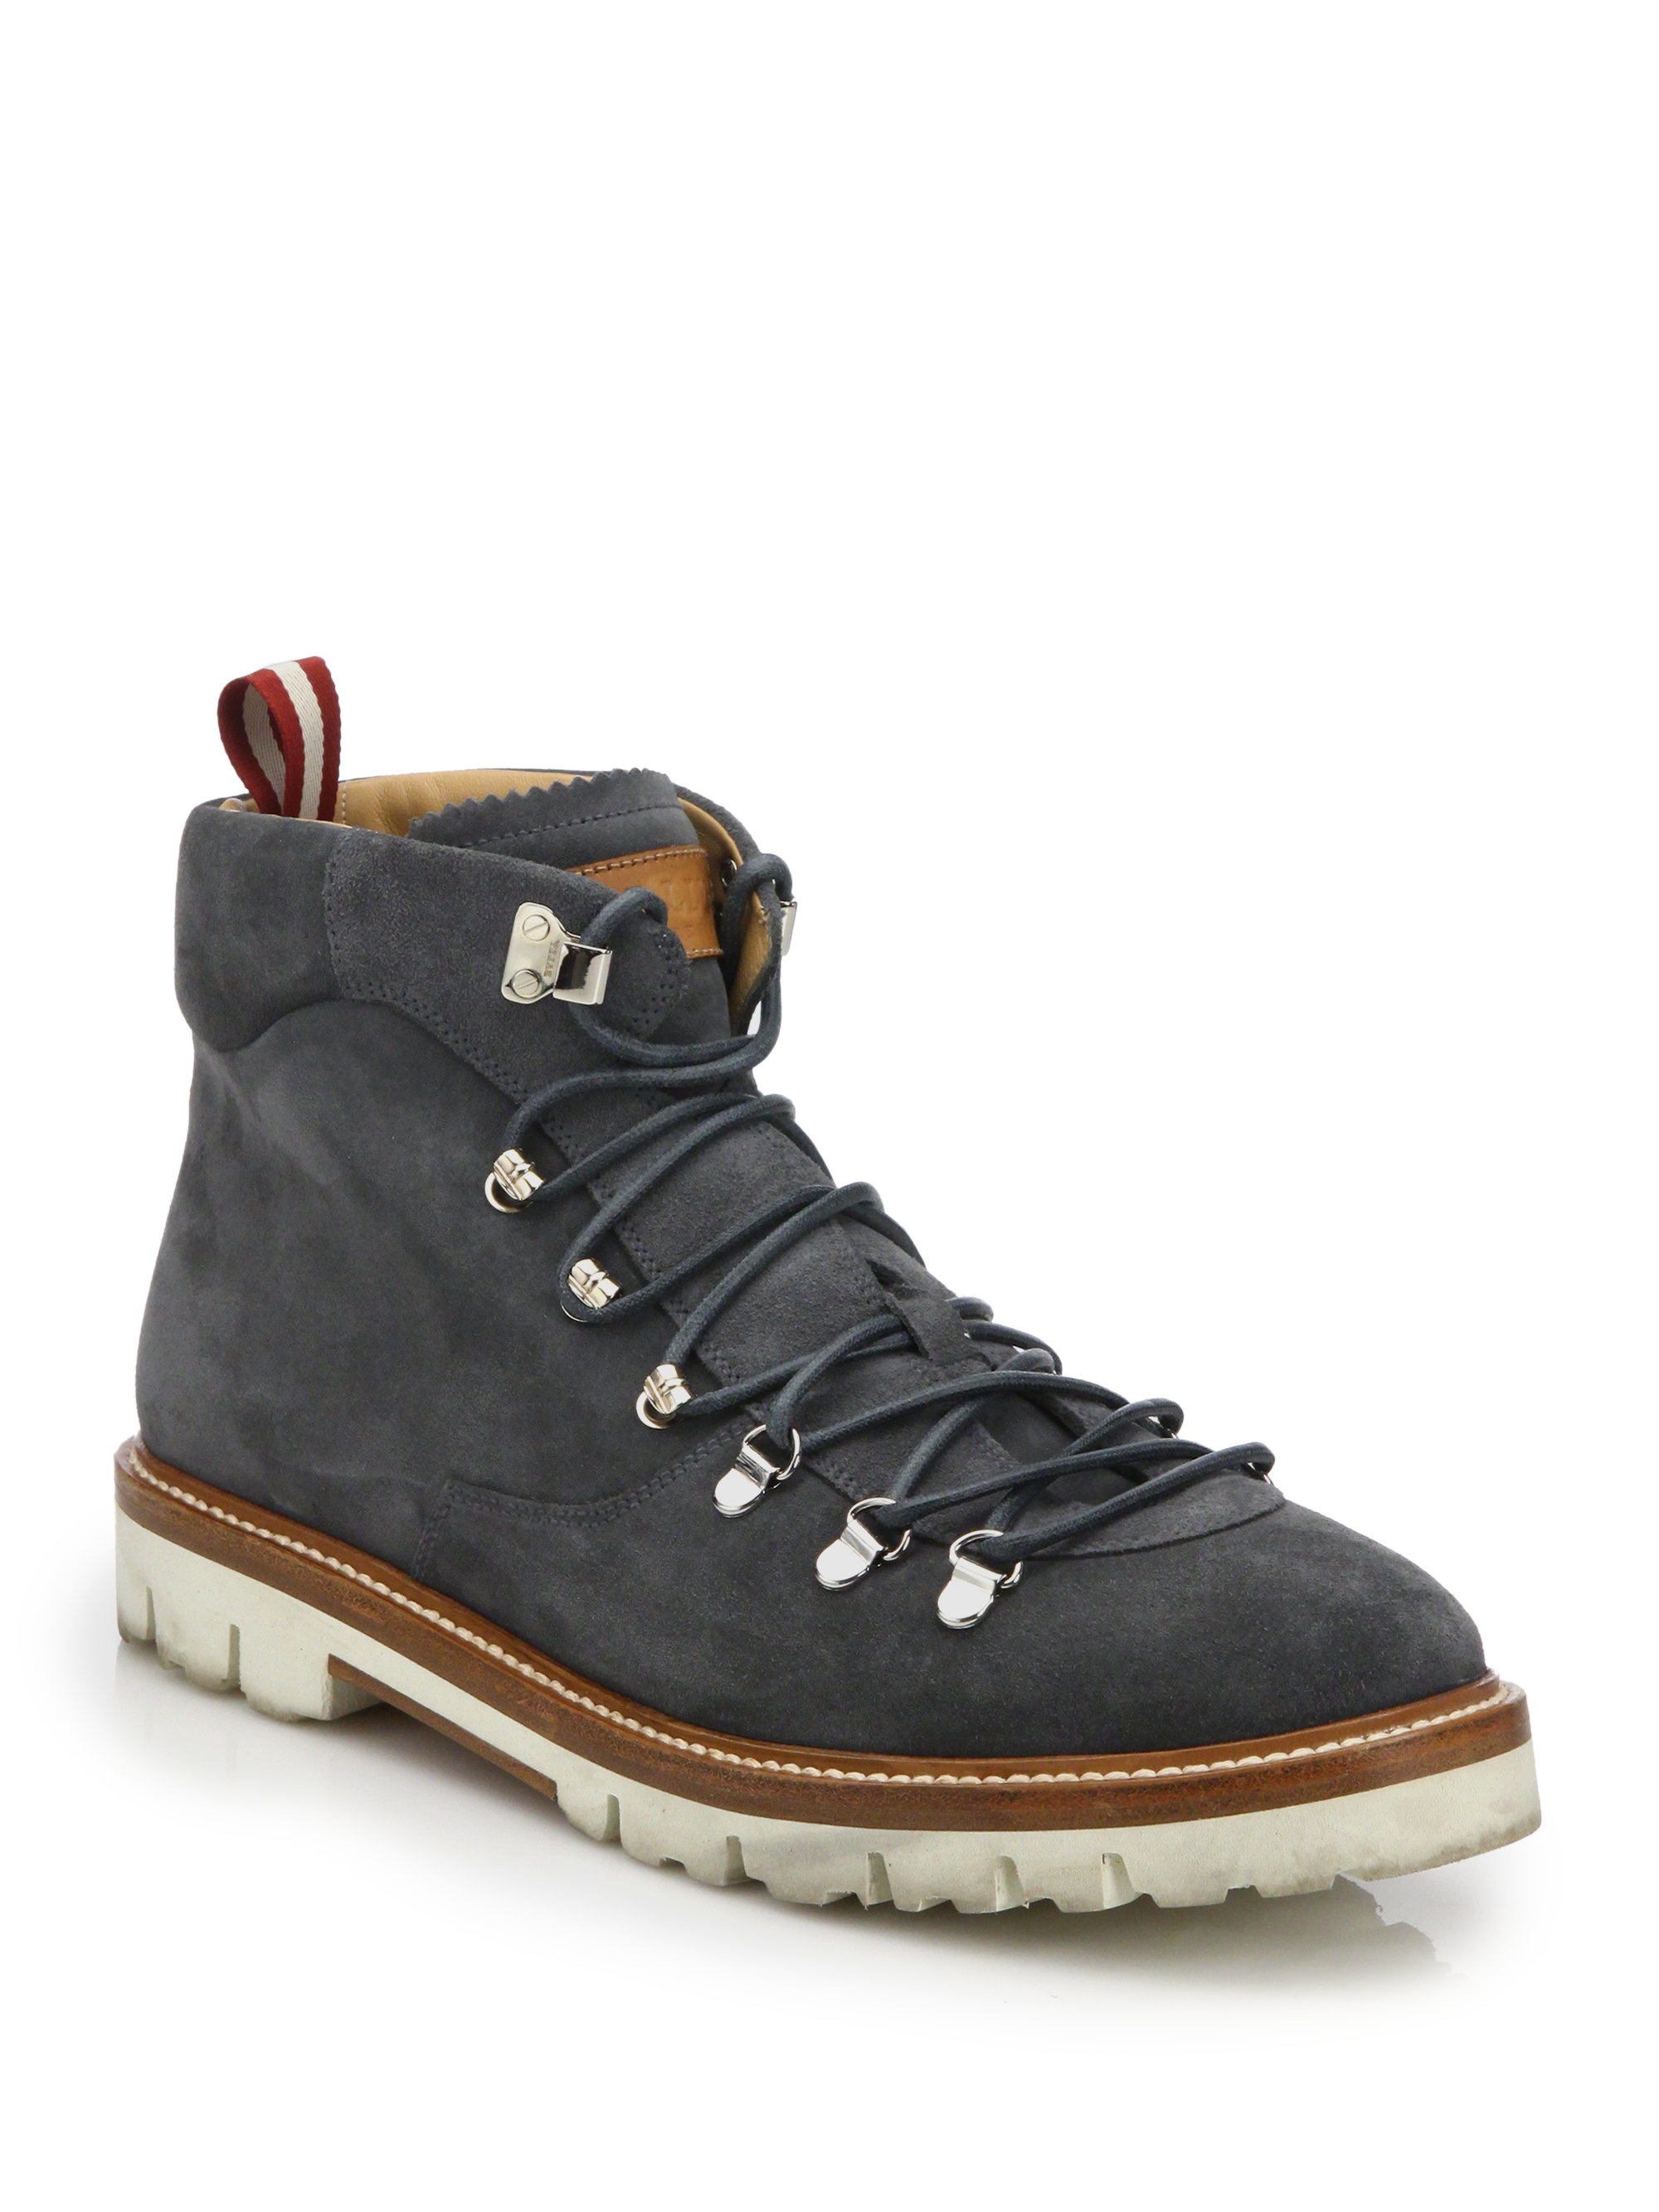 Lyst Bally J Cole For Suede Hiking Boots In Gray For Men